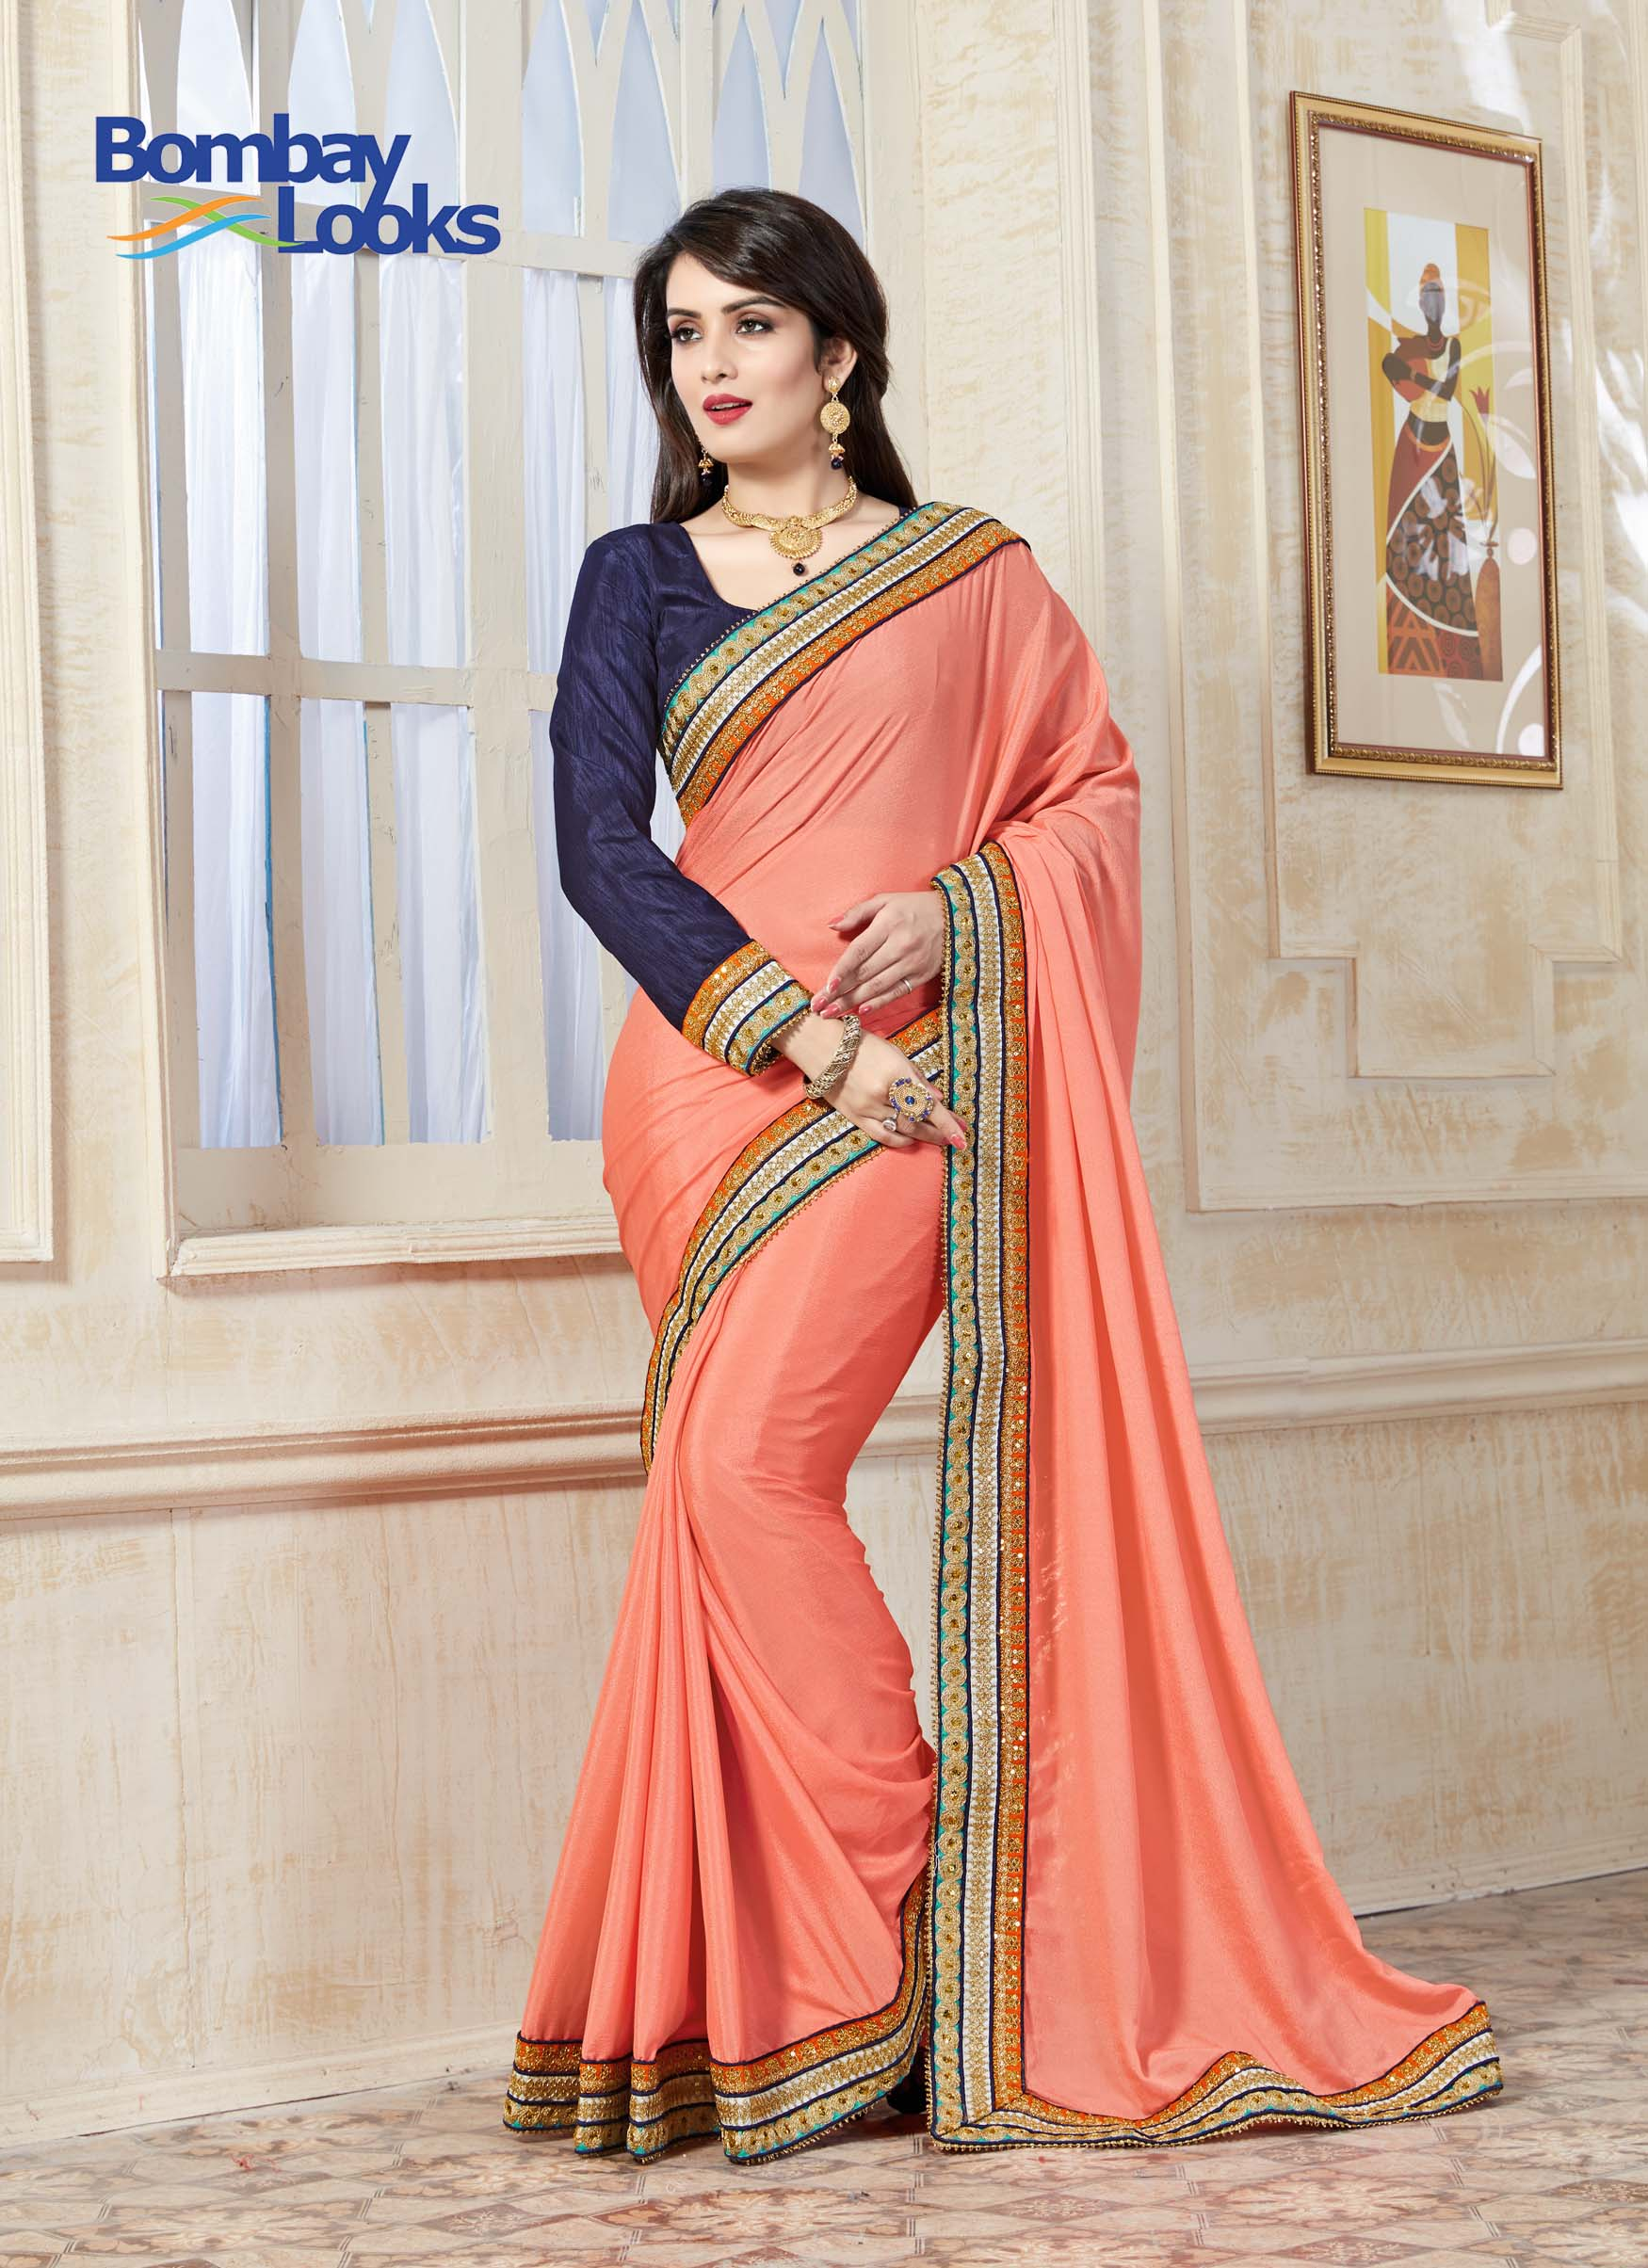 Delicate peach crepe saree with navy blue full sleeved blouse and bright borders